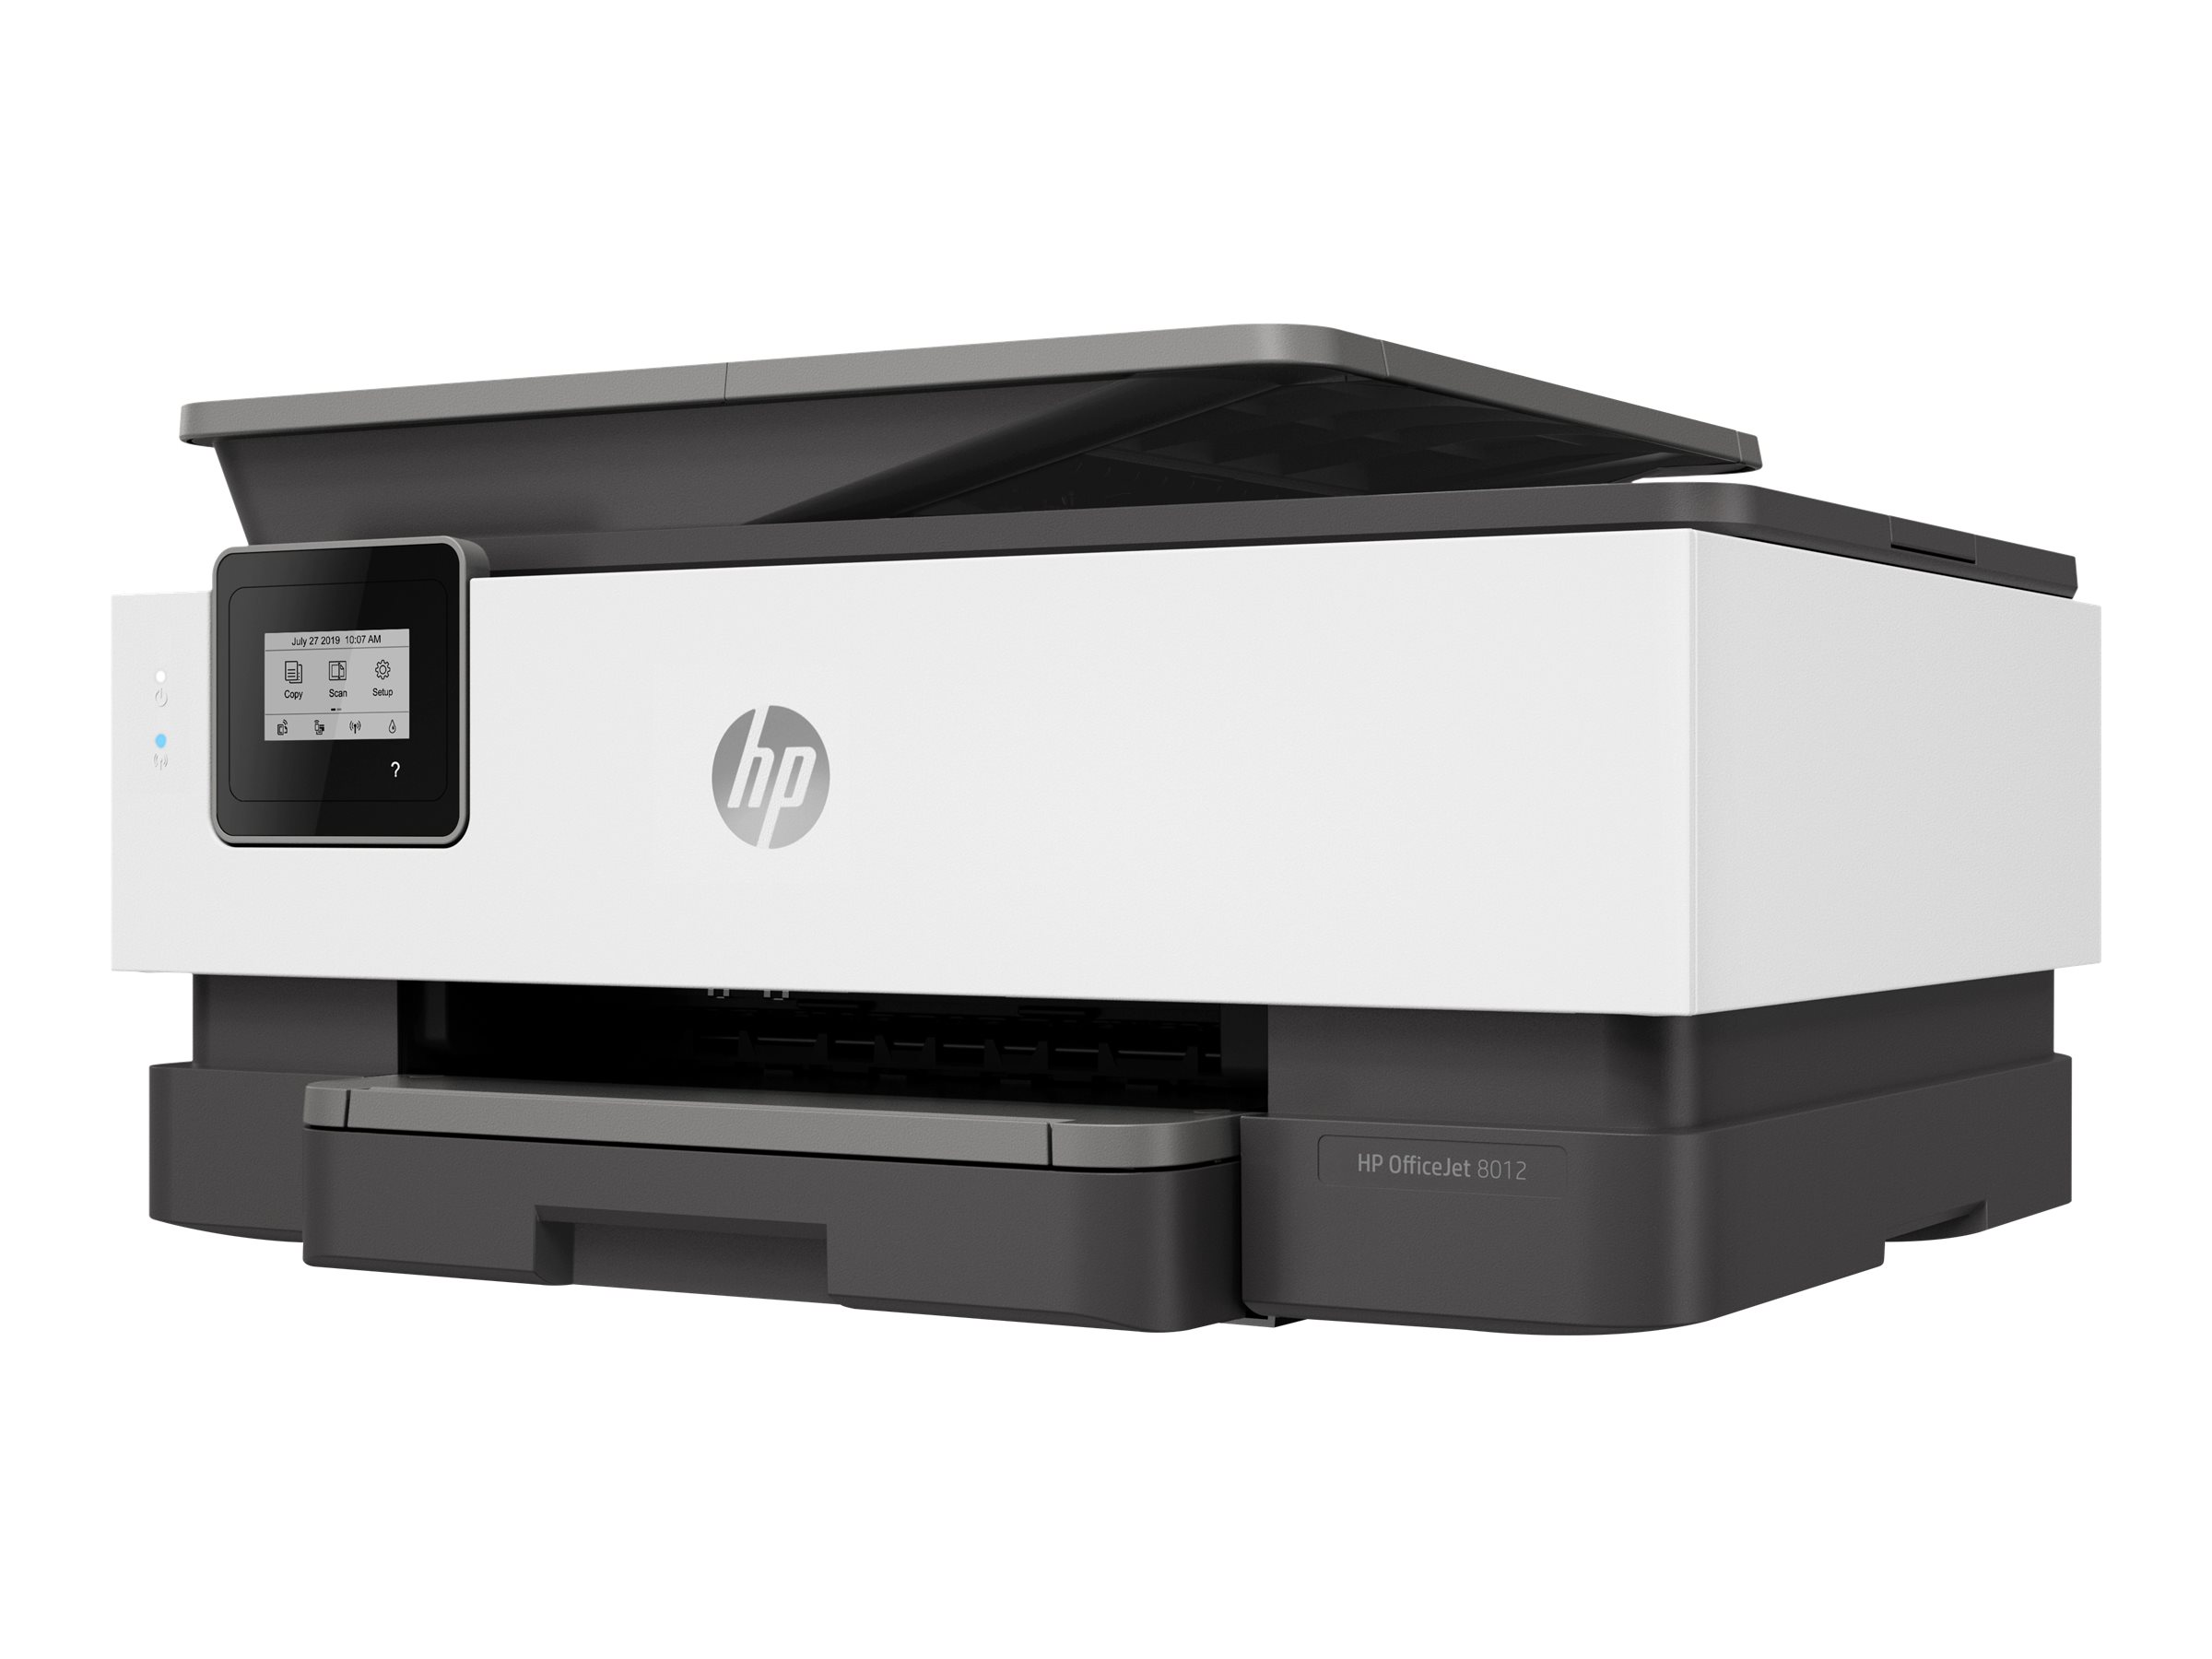 HP Officejet 8012 All-in-One - Multifunktionsdrucker - Farbe - Tintenstrahl - A4 (210 x 297 mm)